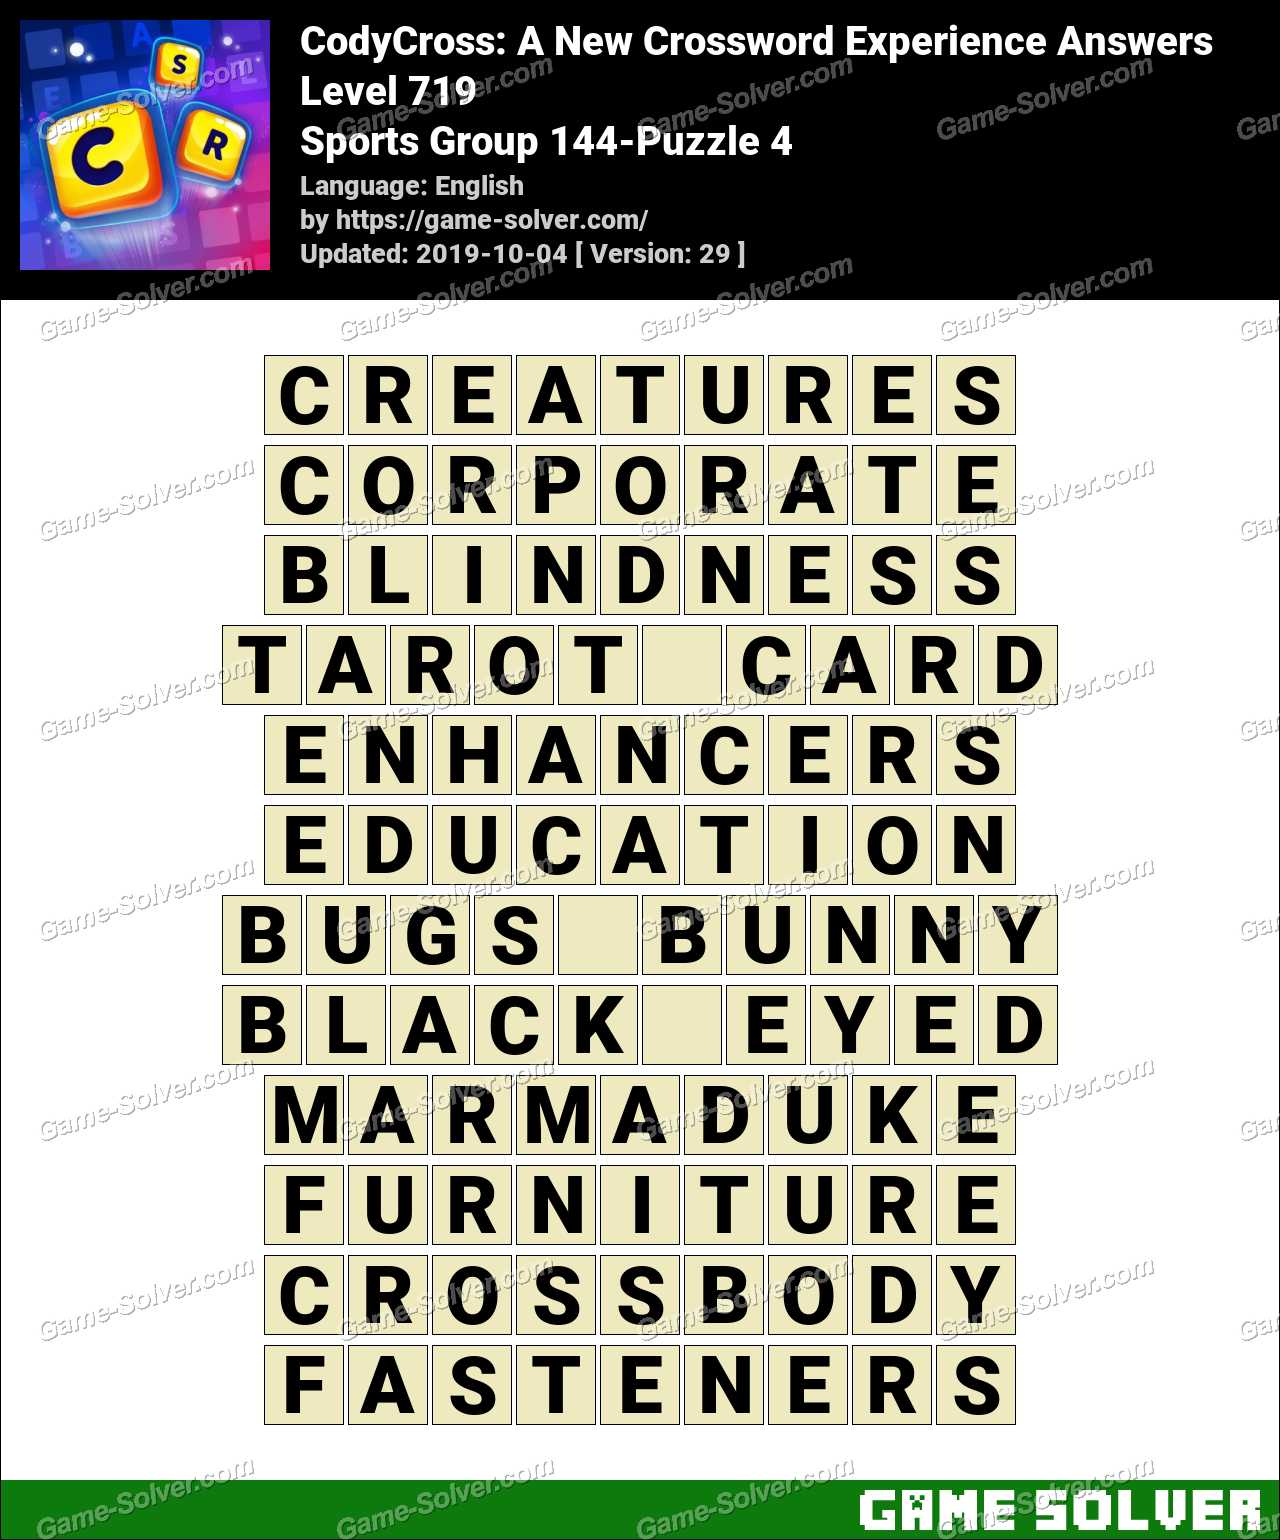 CodyCross Sports Group 144-Puzzle 4 Answers